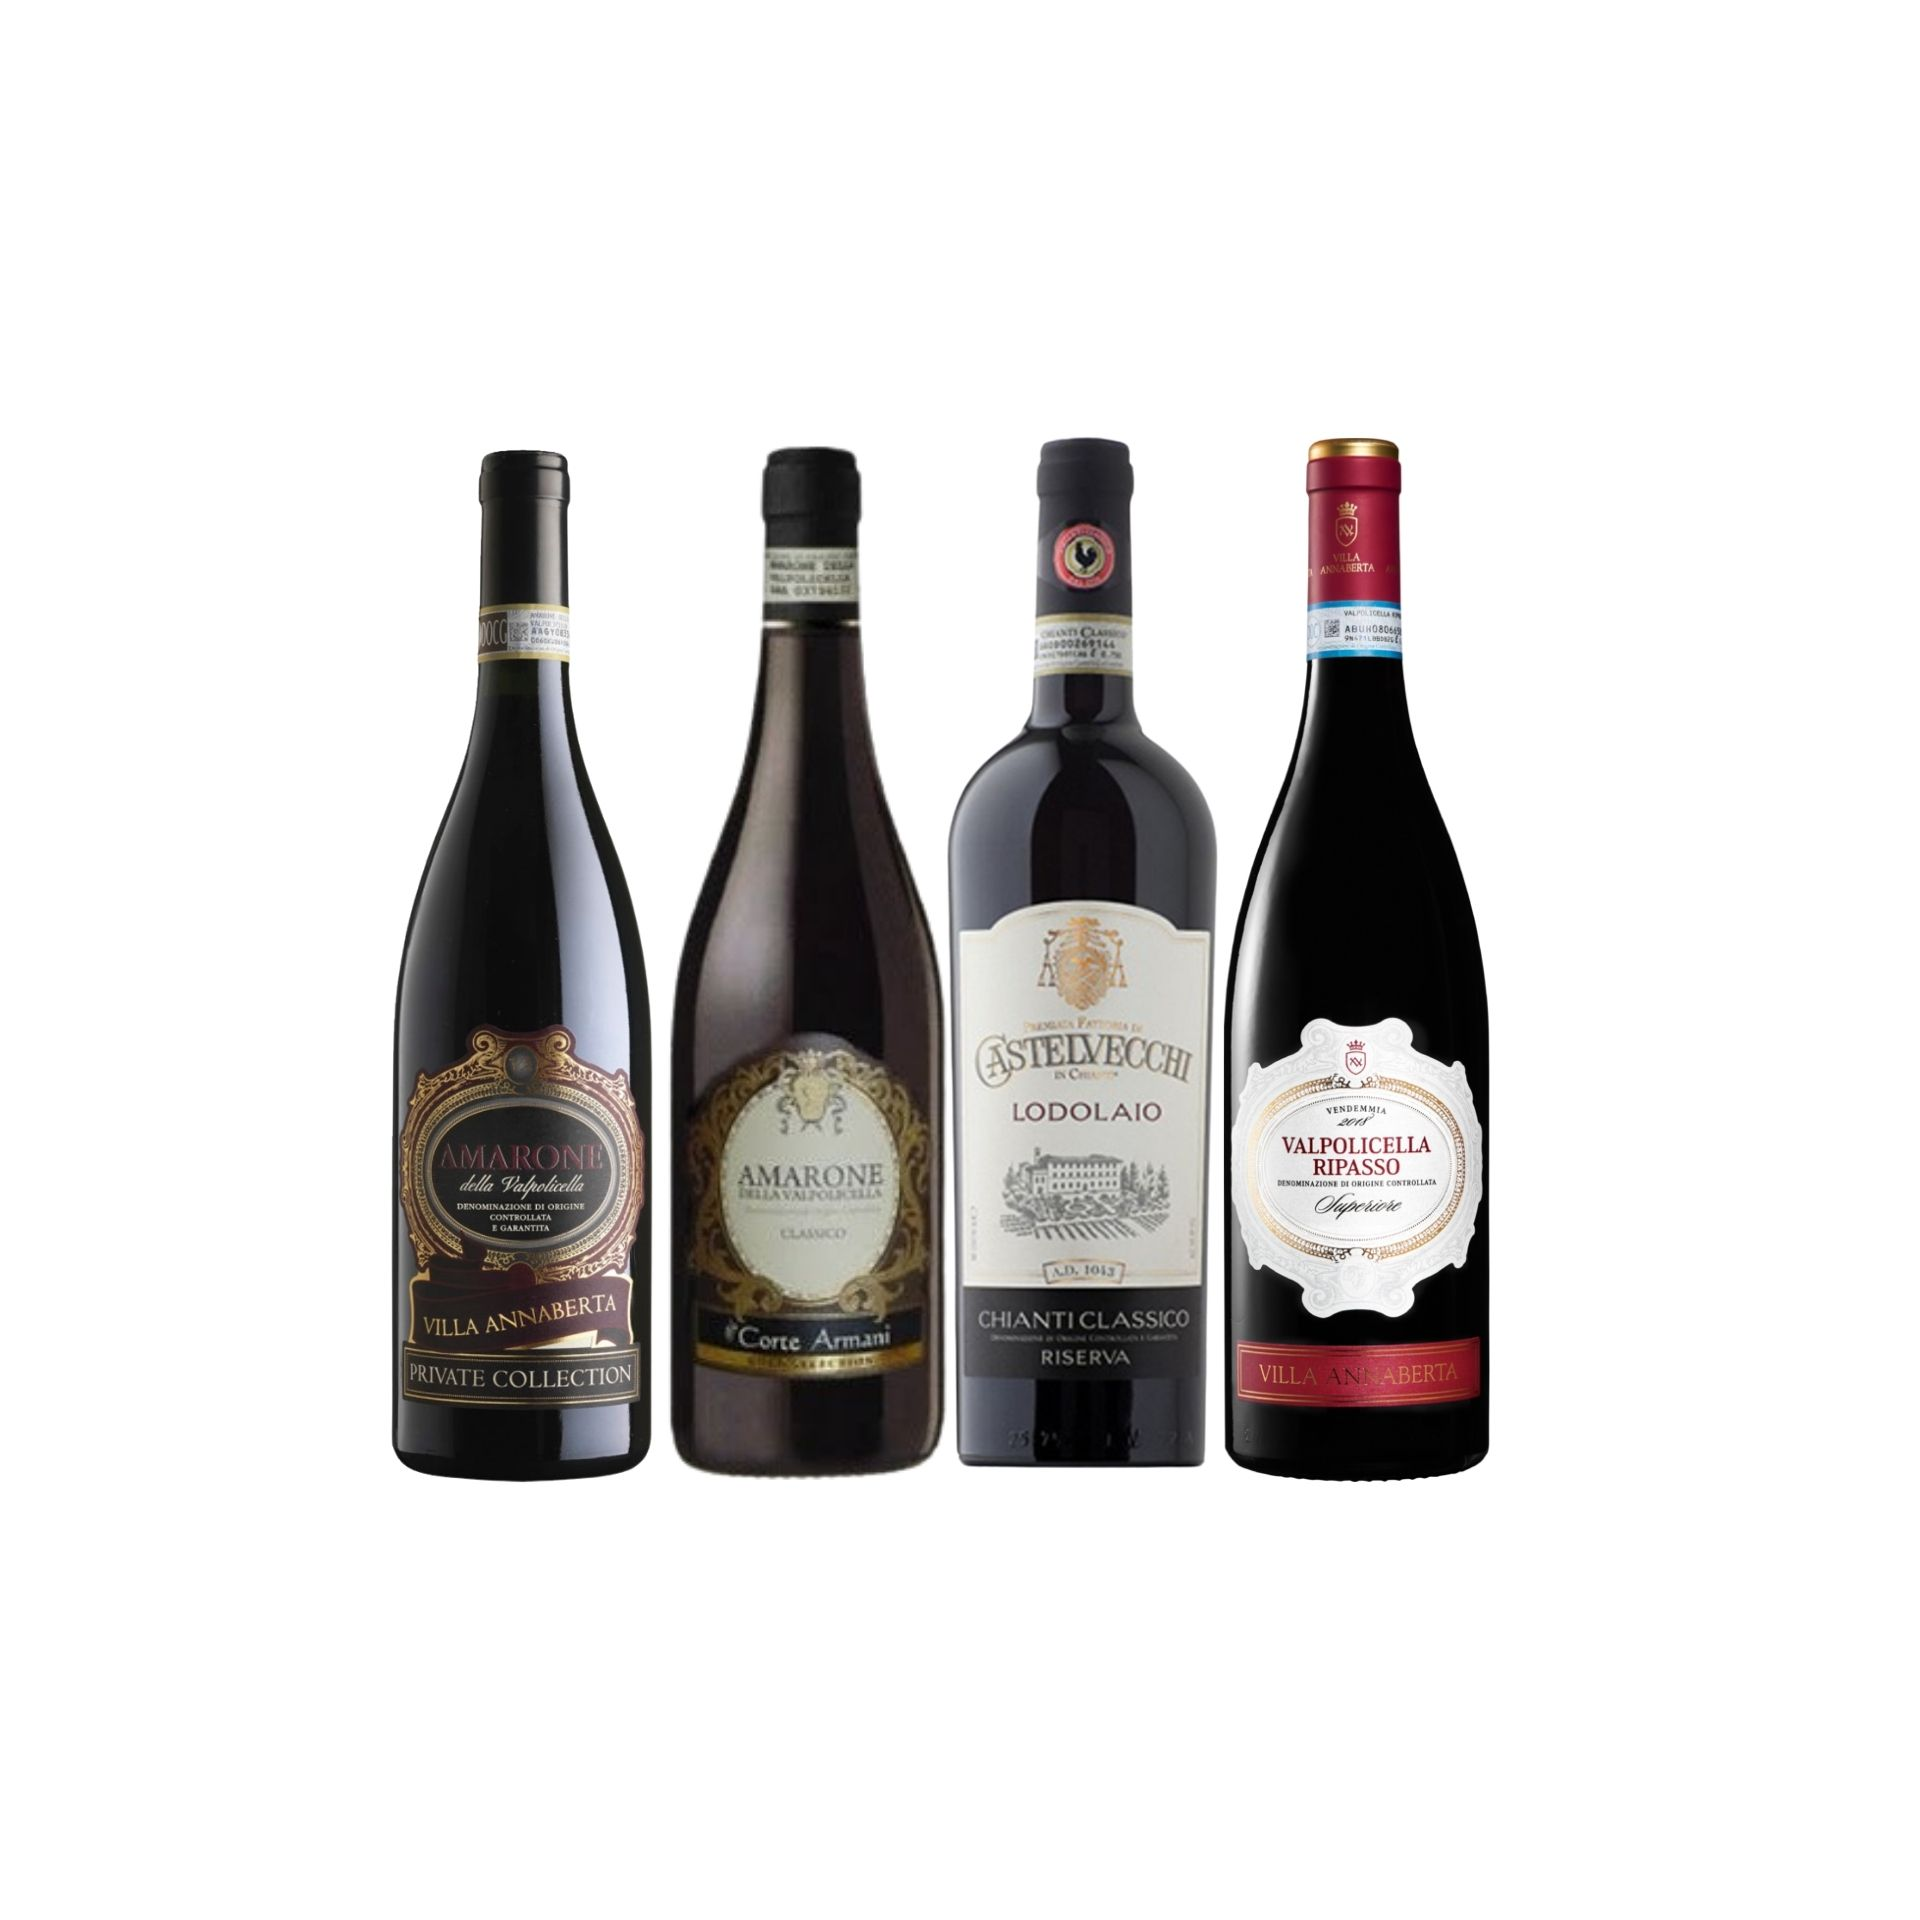 【Bundle B】 Enjoy 2 Bottles of Amarone Plus Chianti Riserva At Only $244 With A Free Set of 6 Schott Zwiesel Wine Glass worth $90 And Top-Up $48 for A Bottle of Ripasso Worth $60